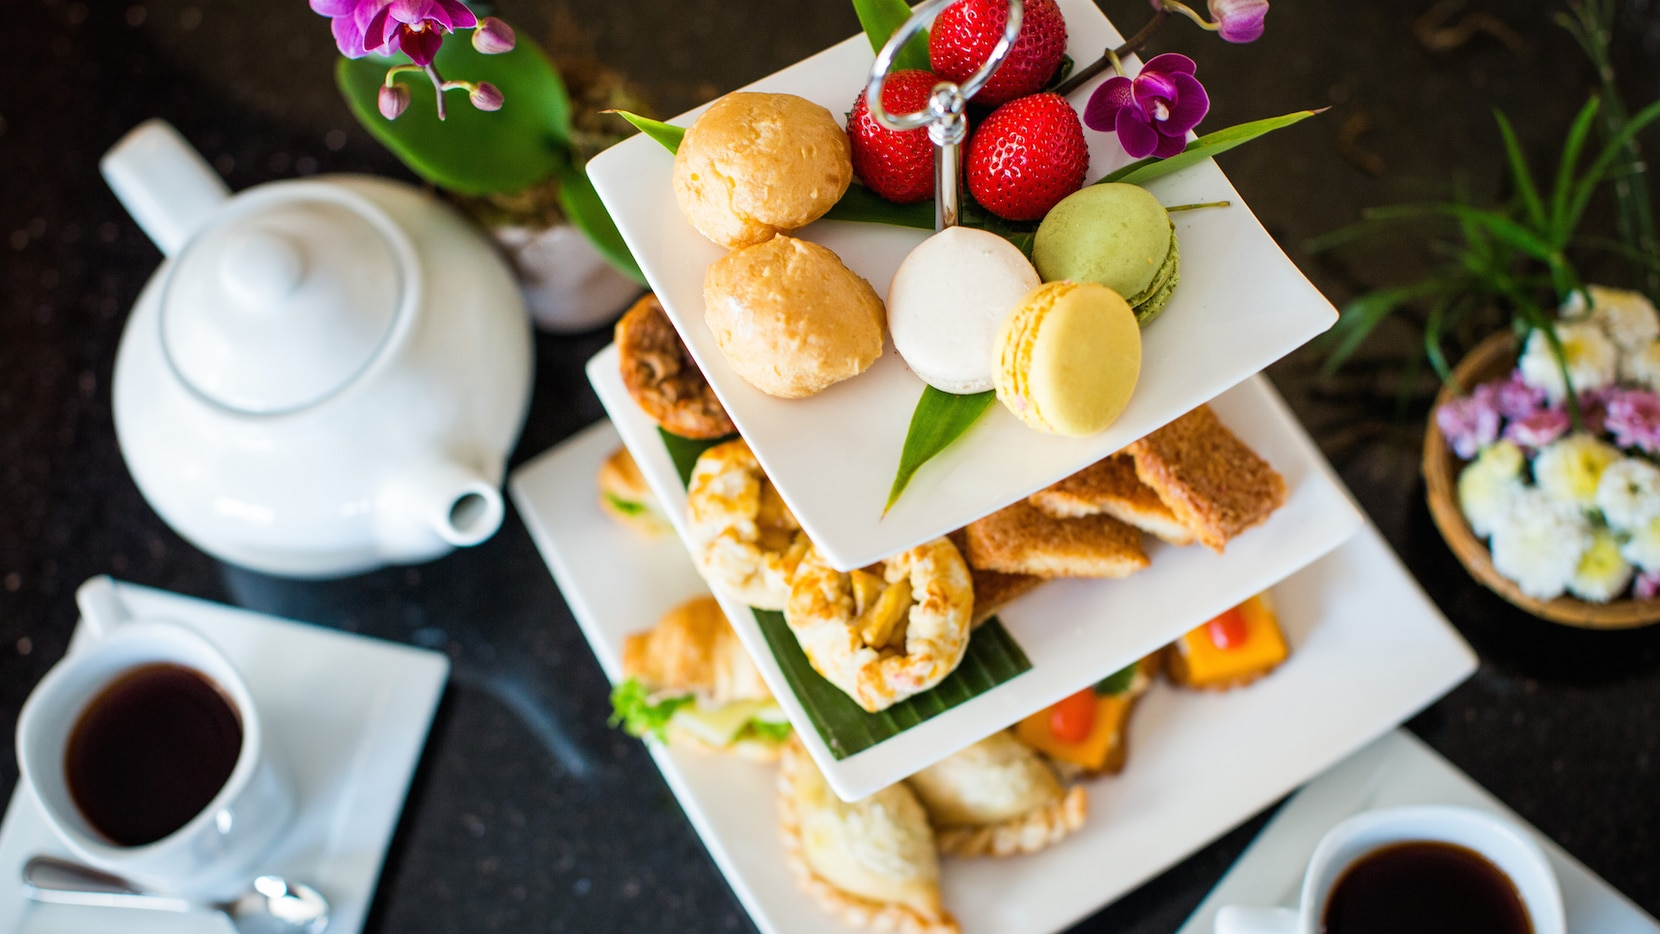 Bangkok at Beltline, a new restaurant, is serving high tea with Thai flavors.